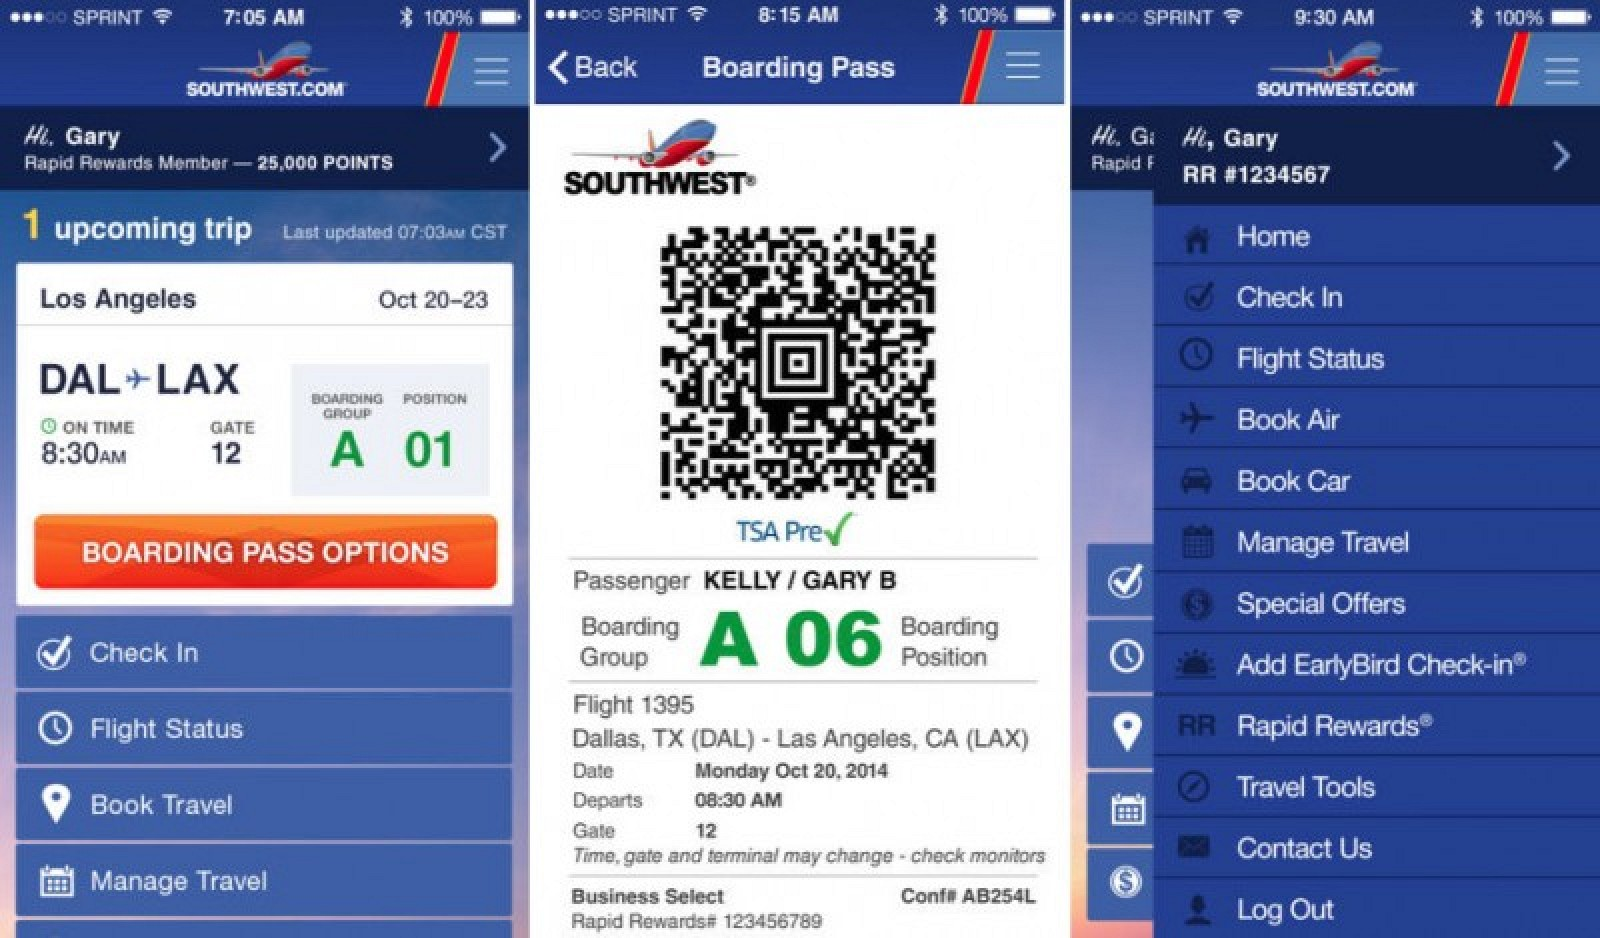 southwest check in email boarding pass